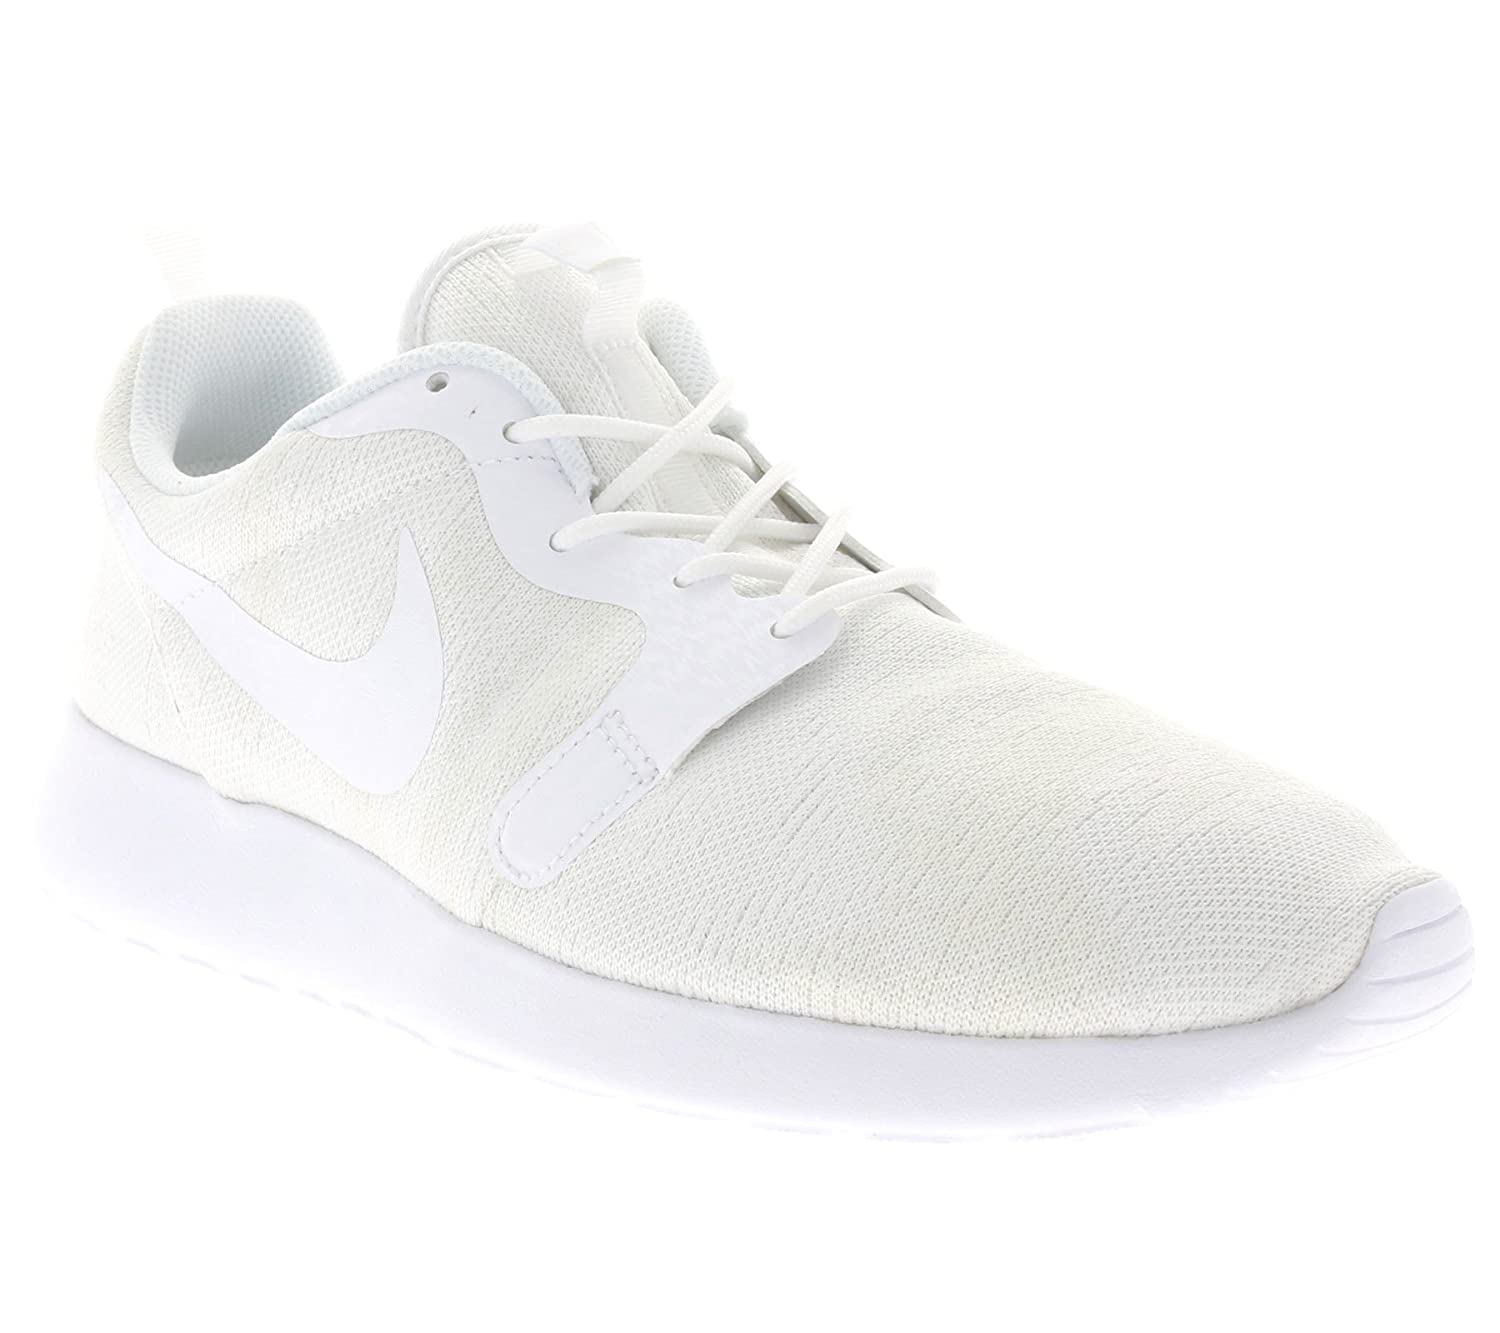 bcb25a84bb31 Nike Men s Roshe One Kjcrd Running Shoes Black  Amazon.co.uk  Shoes   Bags